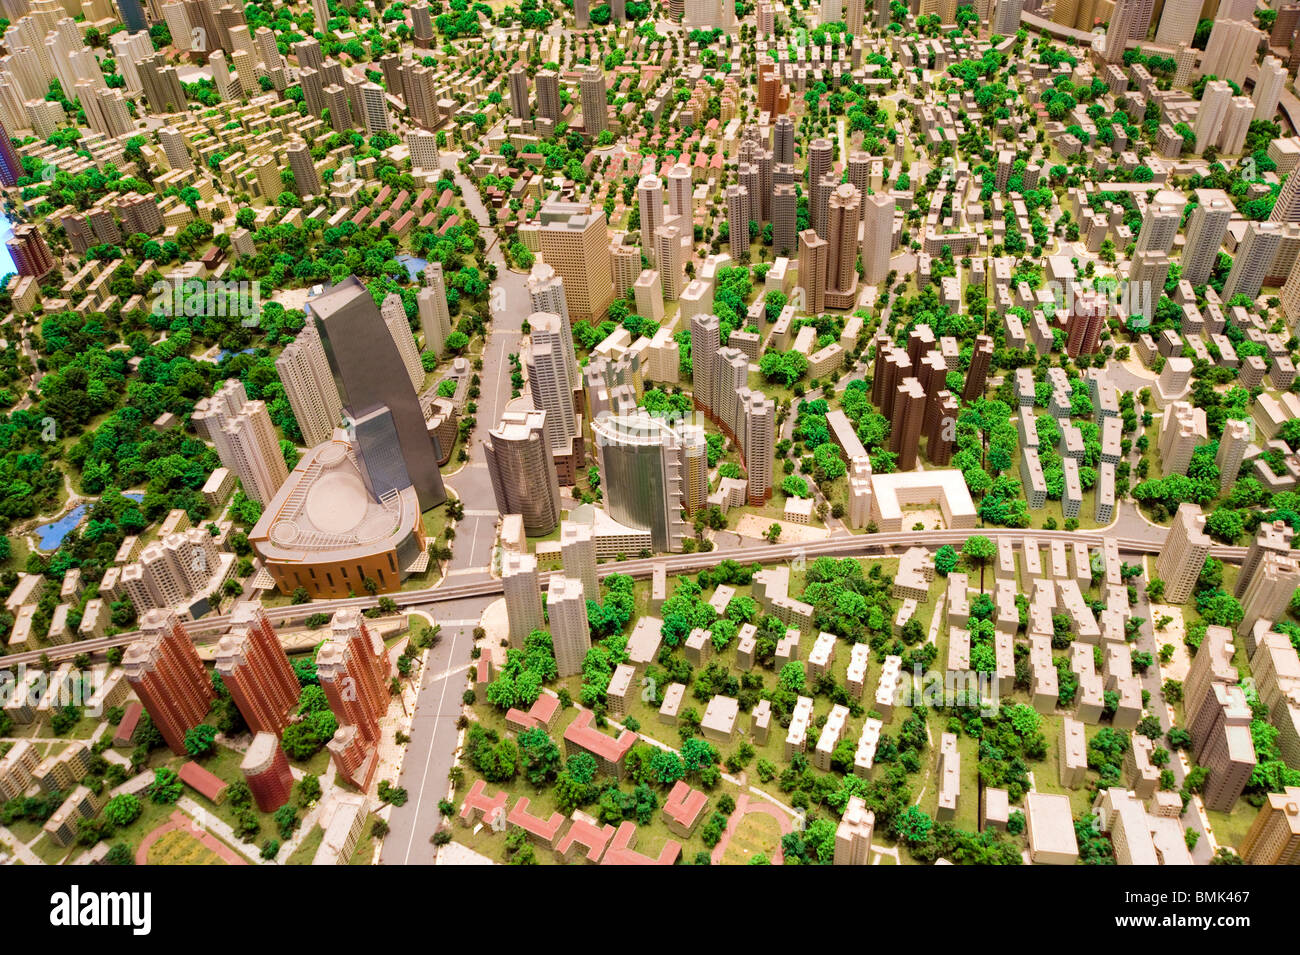 Scale model of the city in the Shanghai Urban Planning Museum, Shanghai, China - Stock Image